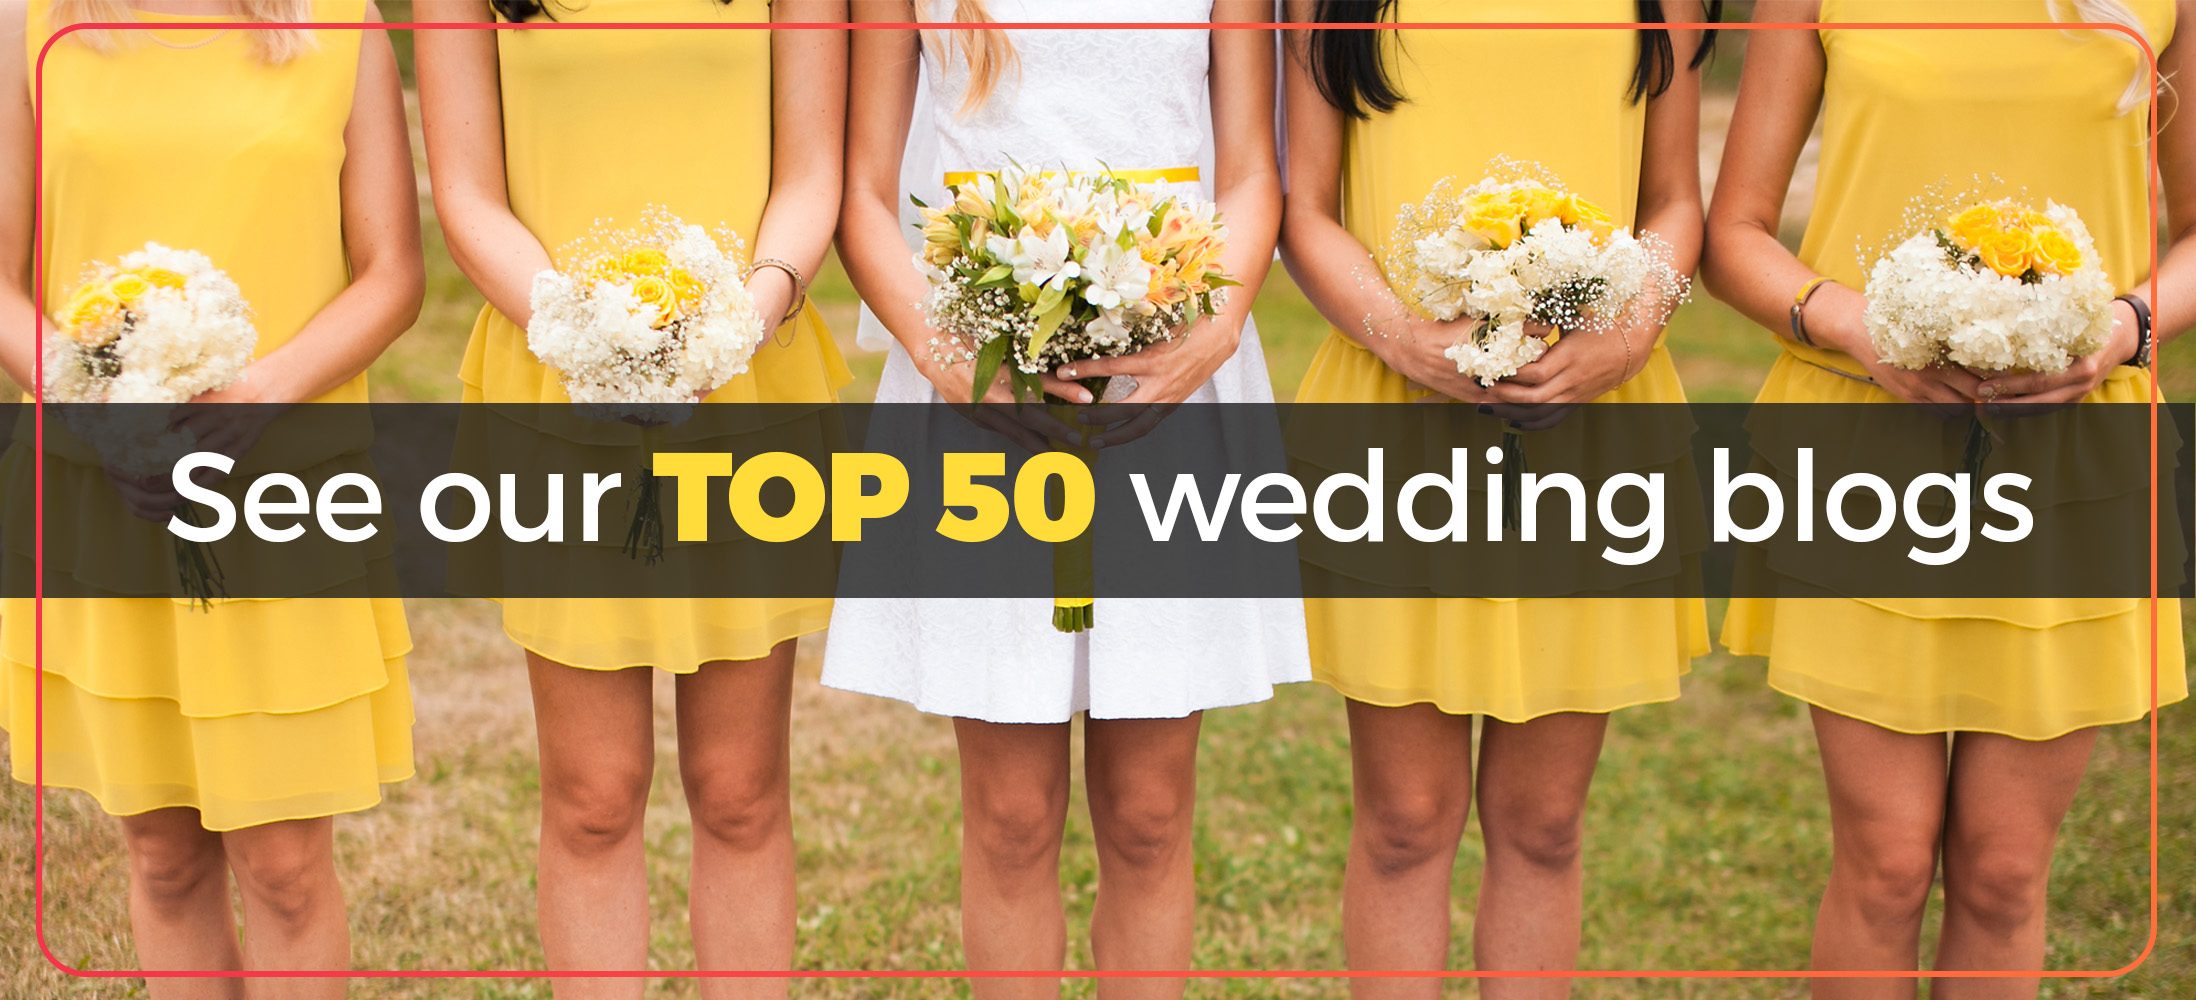 See our top 50 wedding blogs